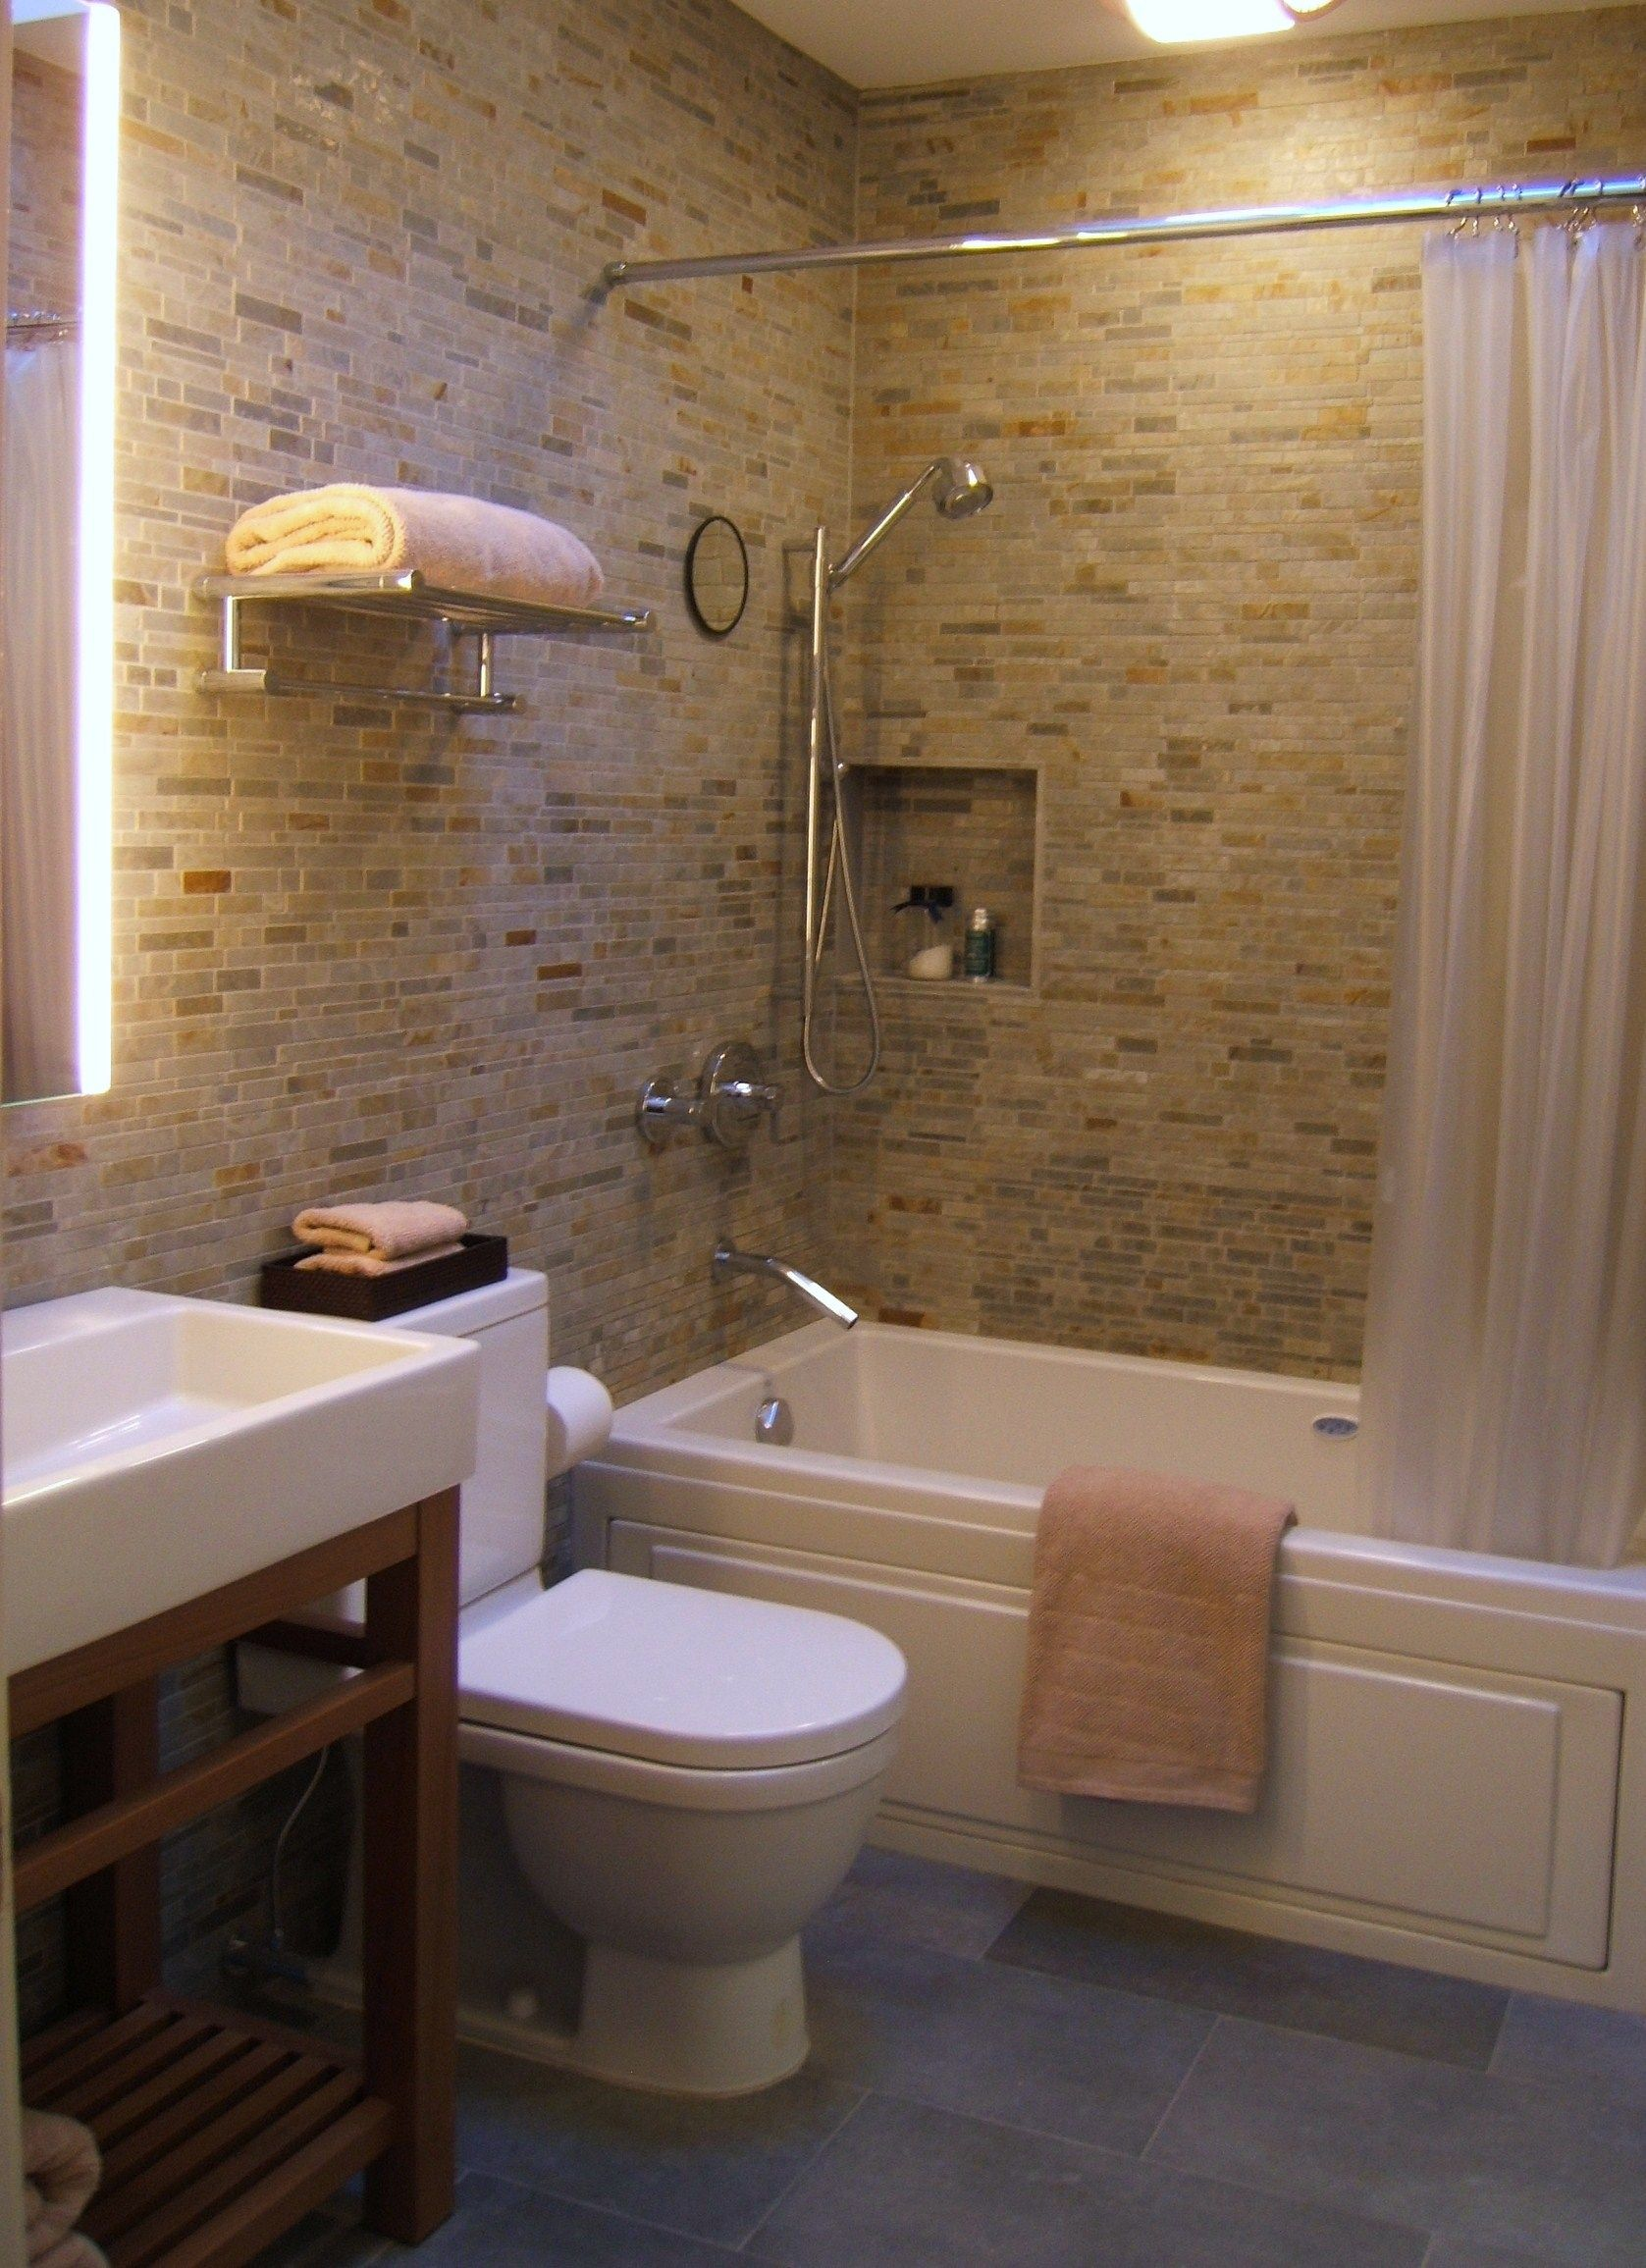 Small bathroom designs south africa small bath for Small bathroom design contemporary